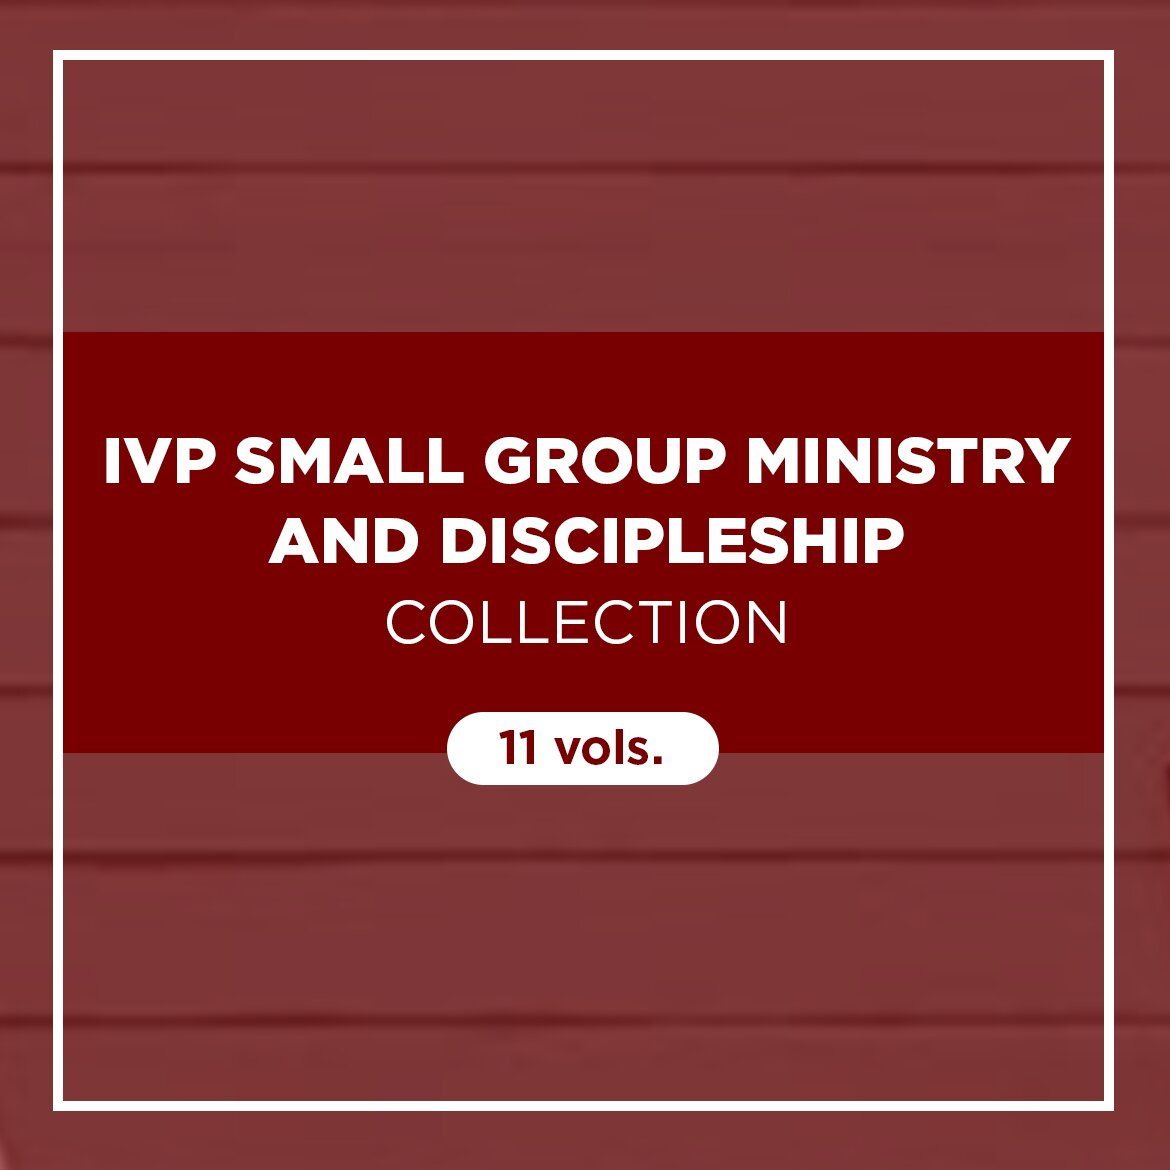 IVP Small Group Ministry and Discipleship Collection (11 vols.)